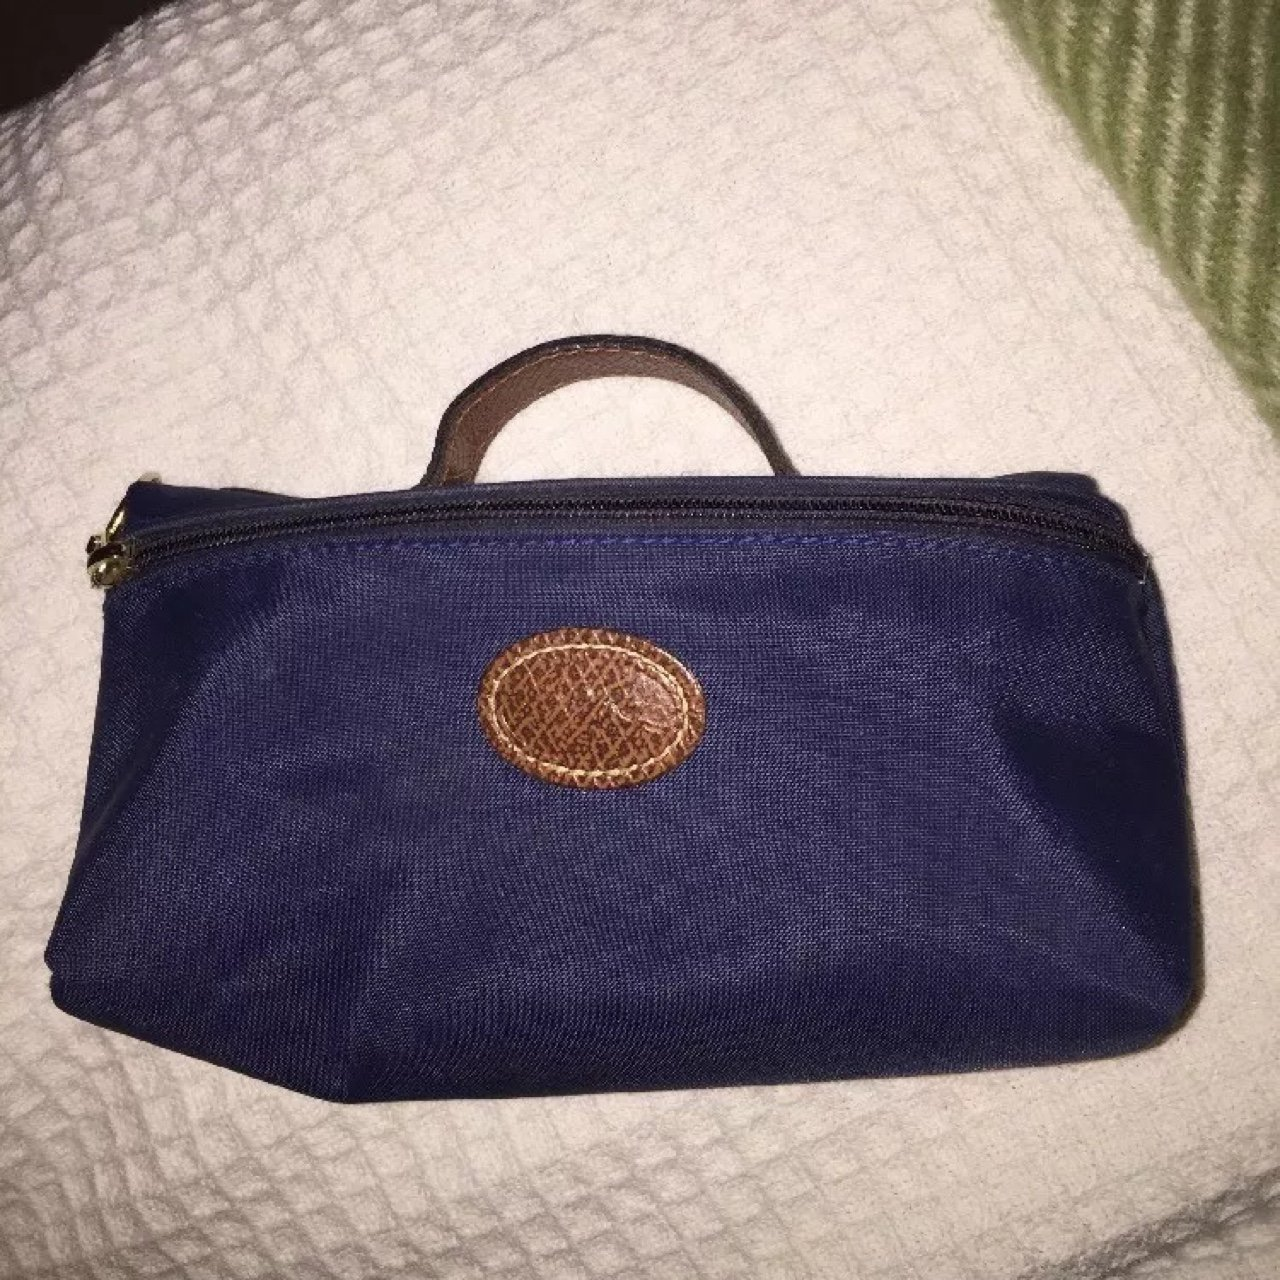 REAL LONGCHAMP LE PLIAGE MAKE UP BAG IN NAVY. USED BUT IN - - Depop 06ba9ab9e08e3